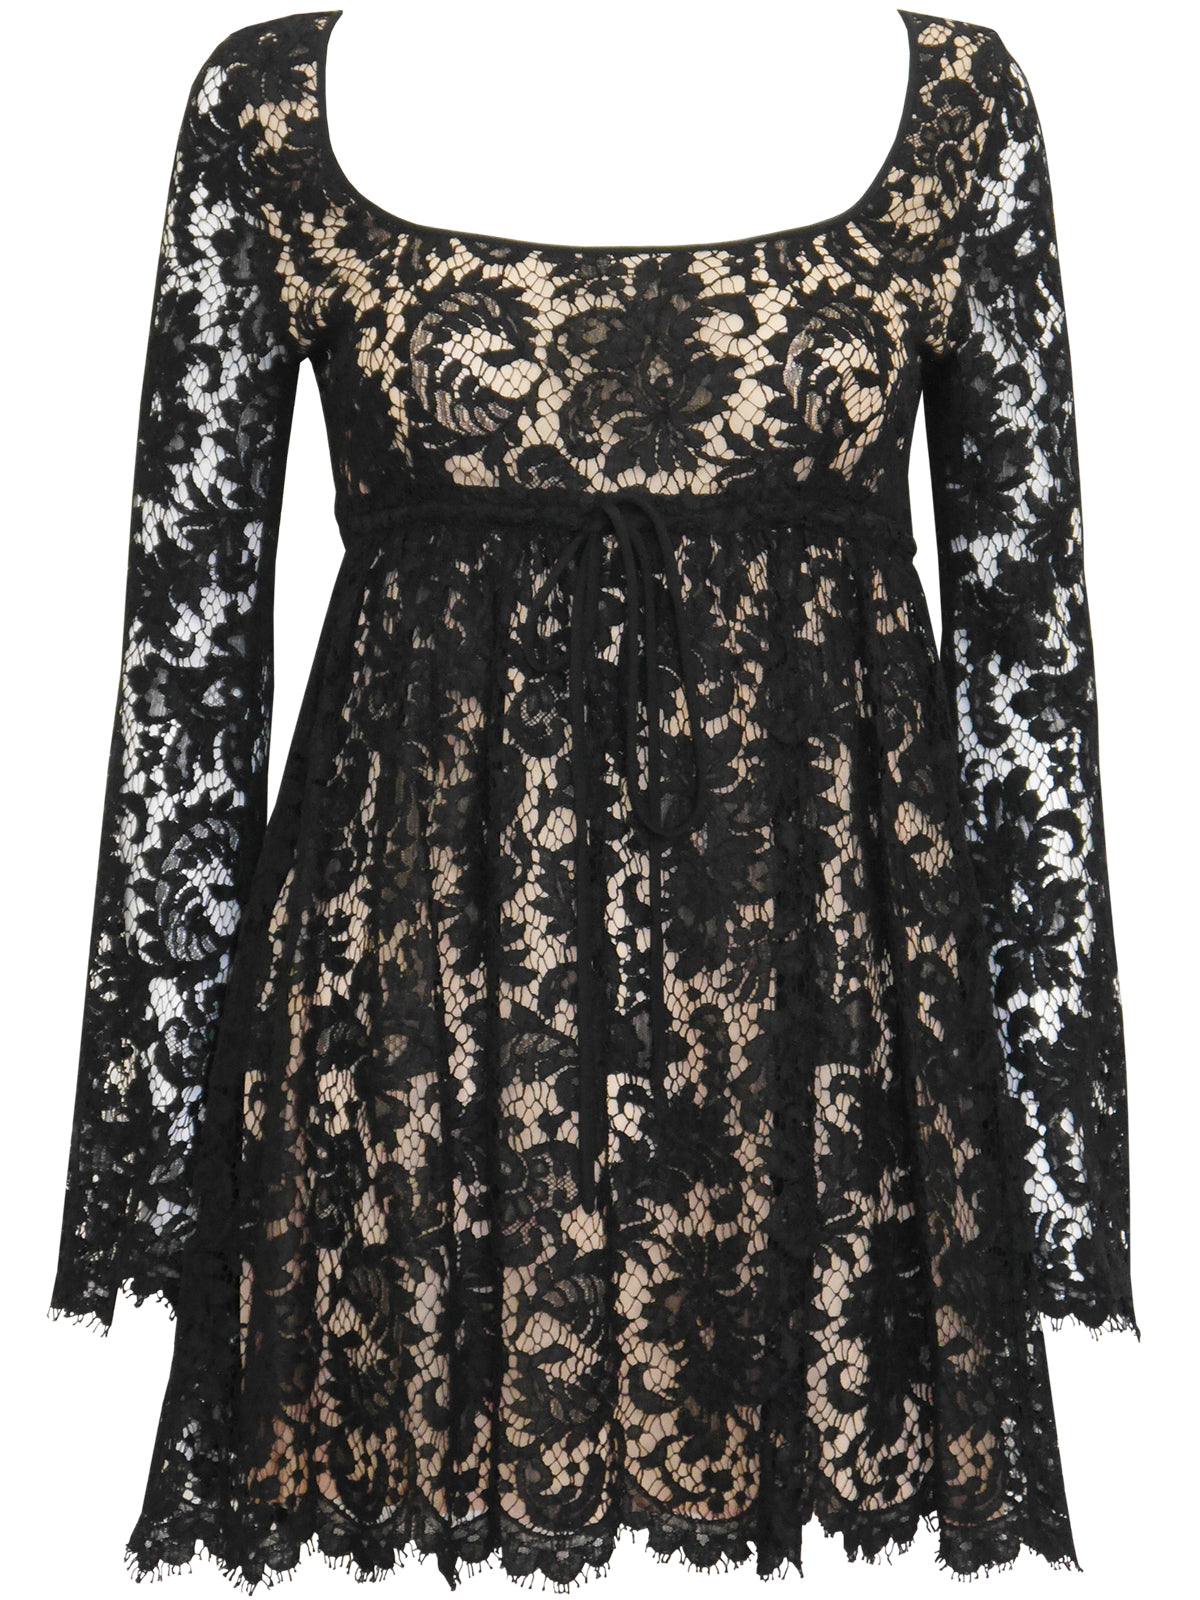 Sold - GUCCI by Tom Ford S/S 1996 Vintage Black Lace Babydoll Ultra Mini Dress Size XS